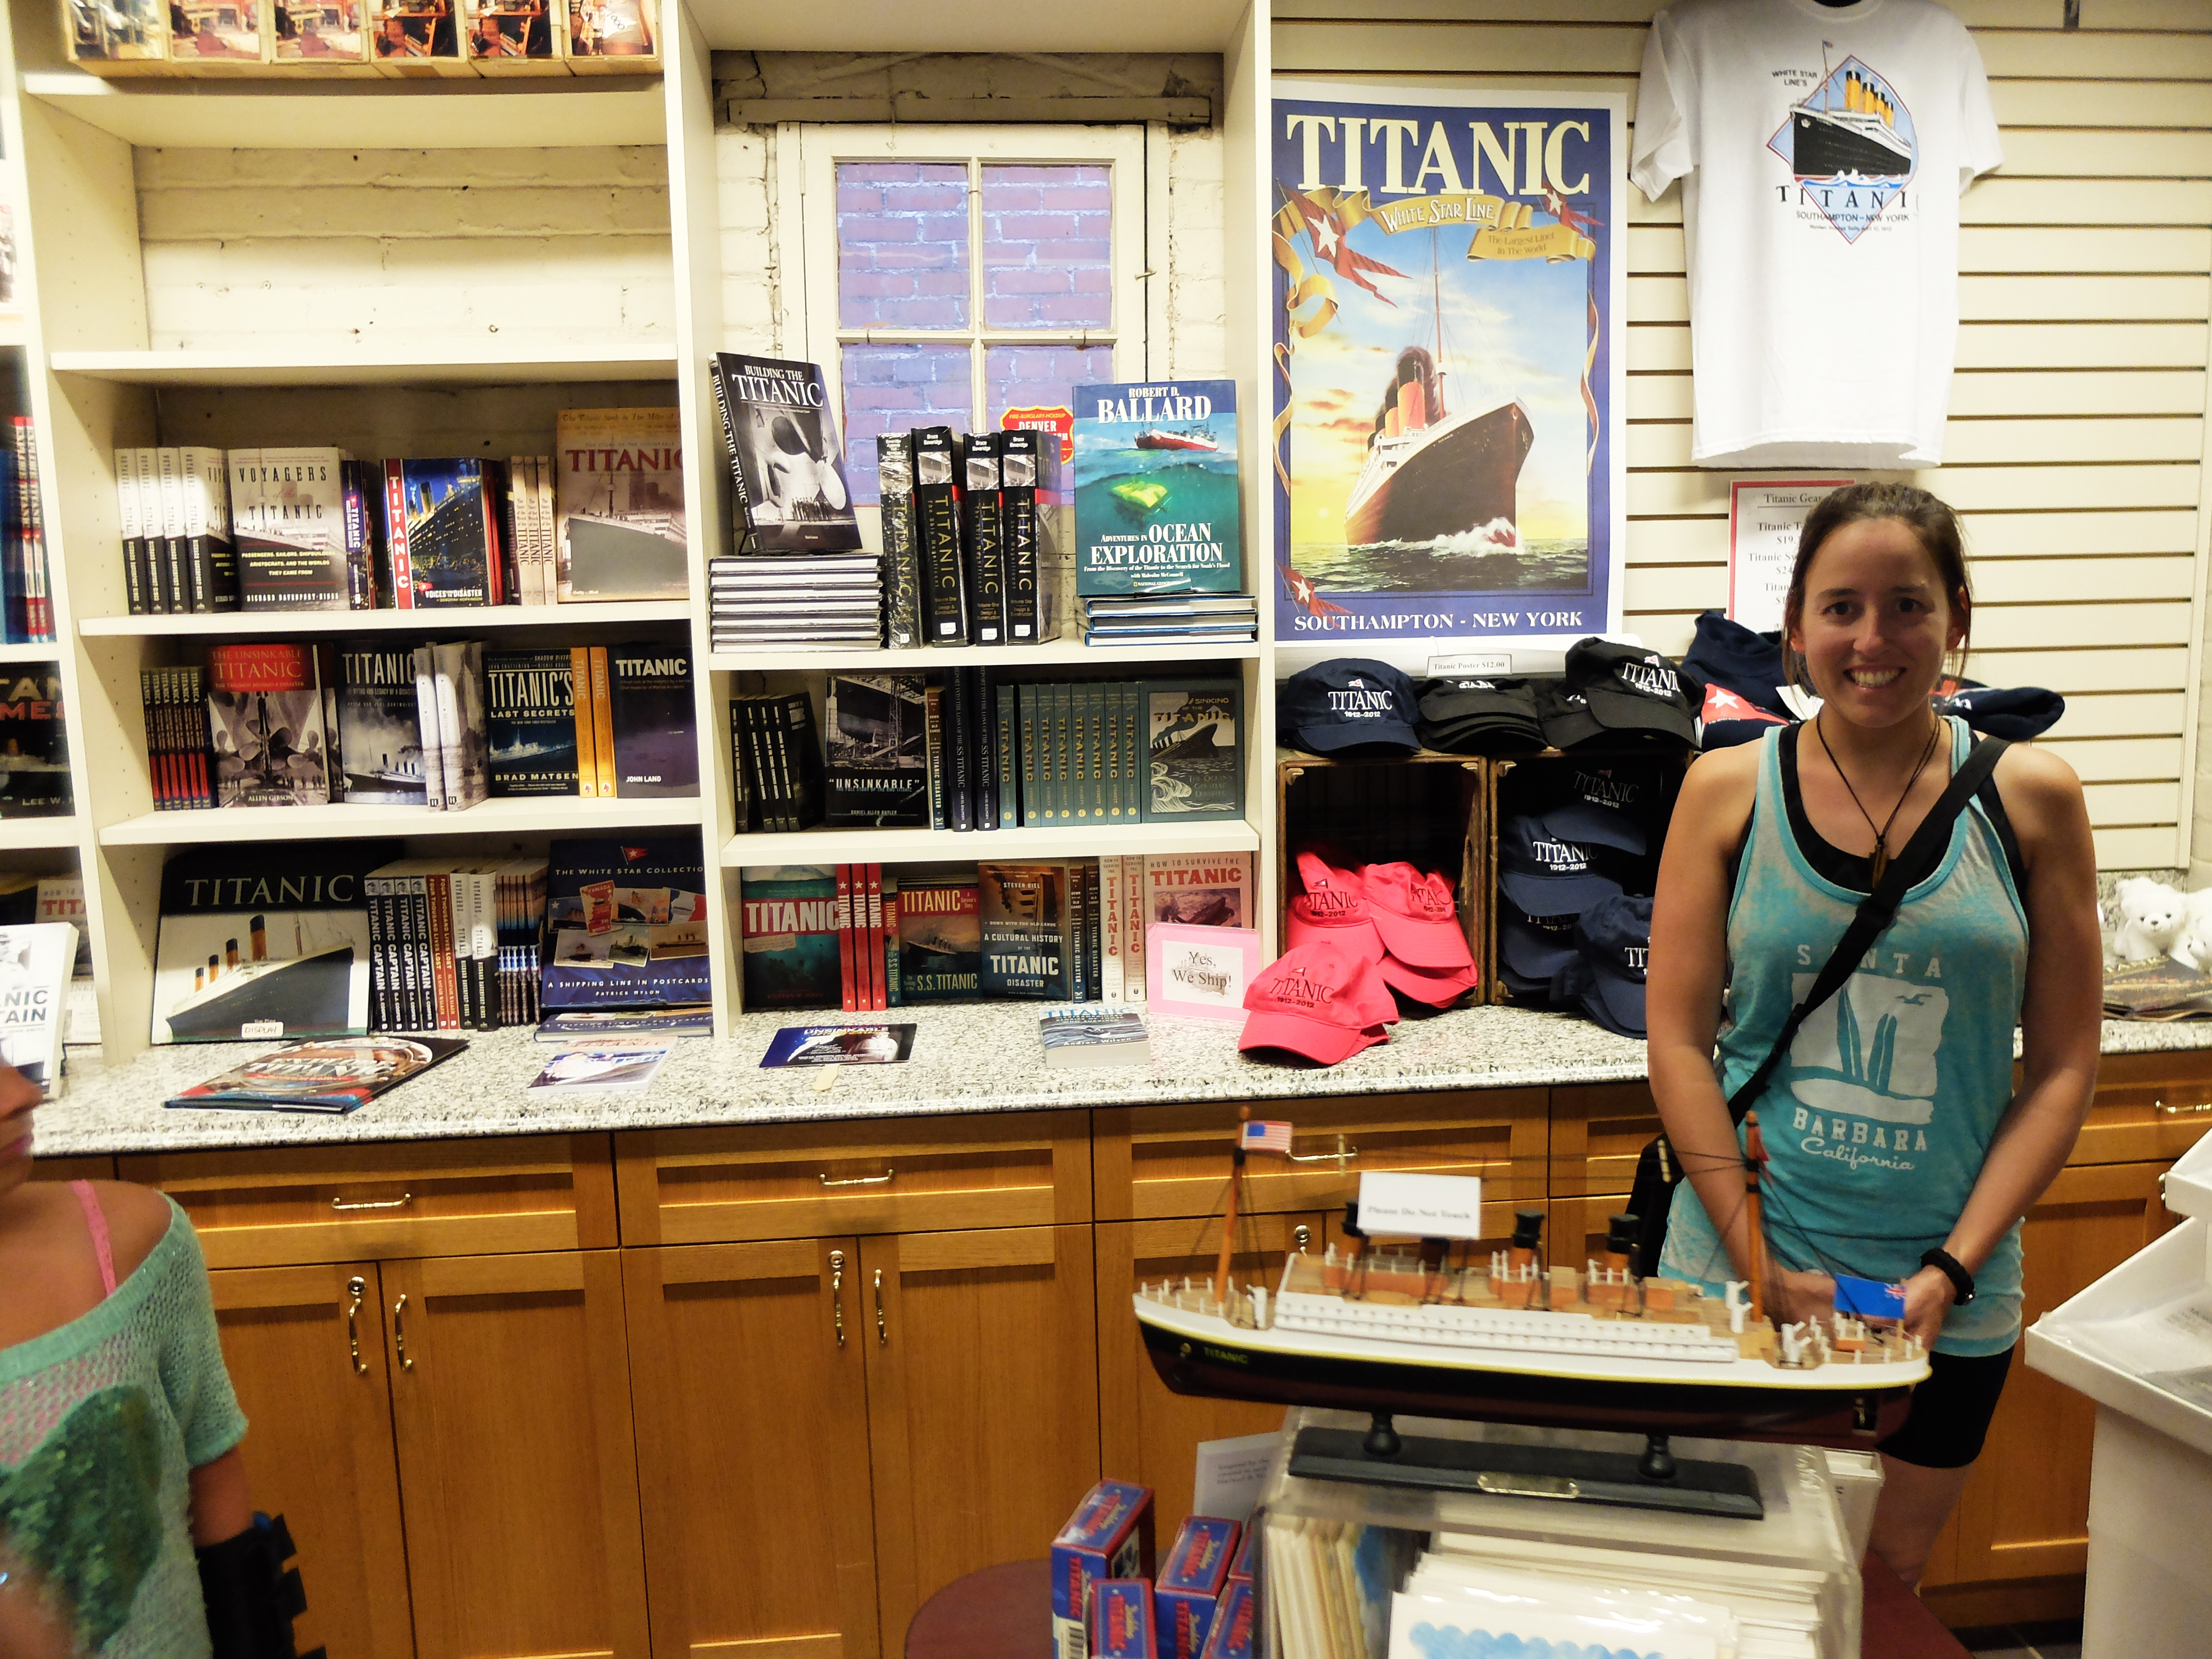 molly brown museum titanic (11)